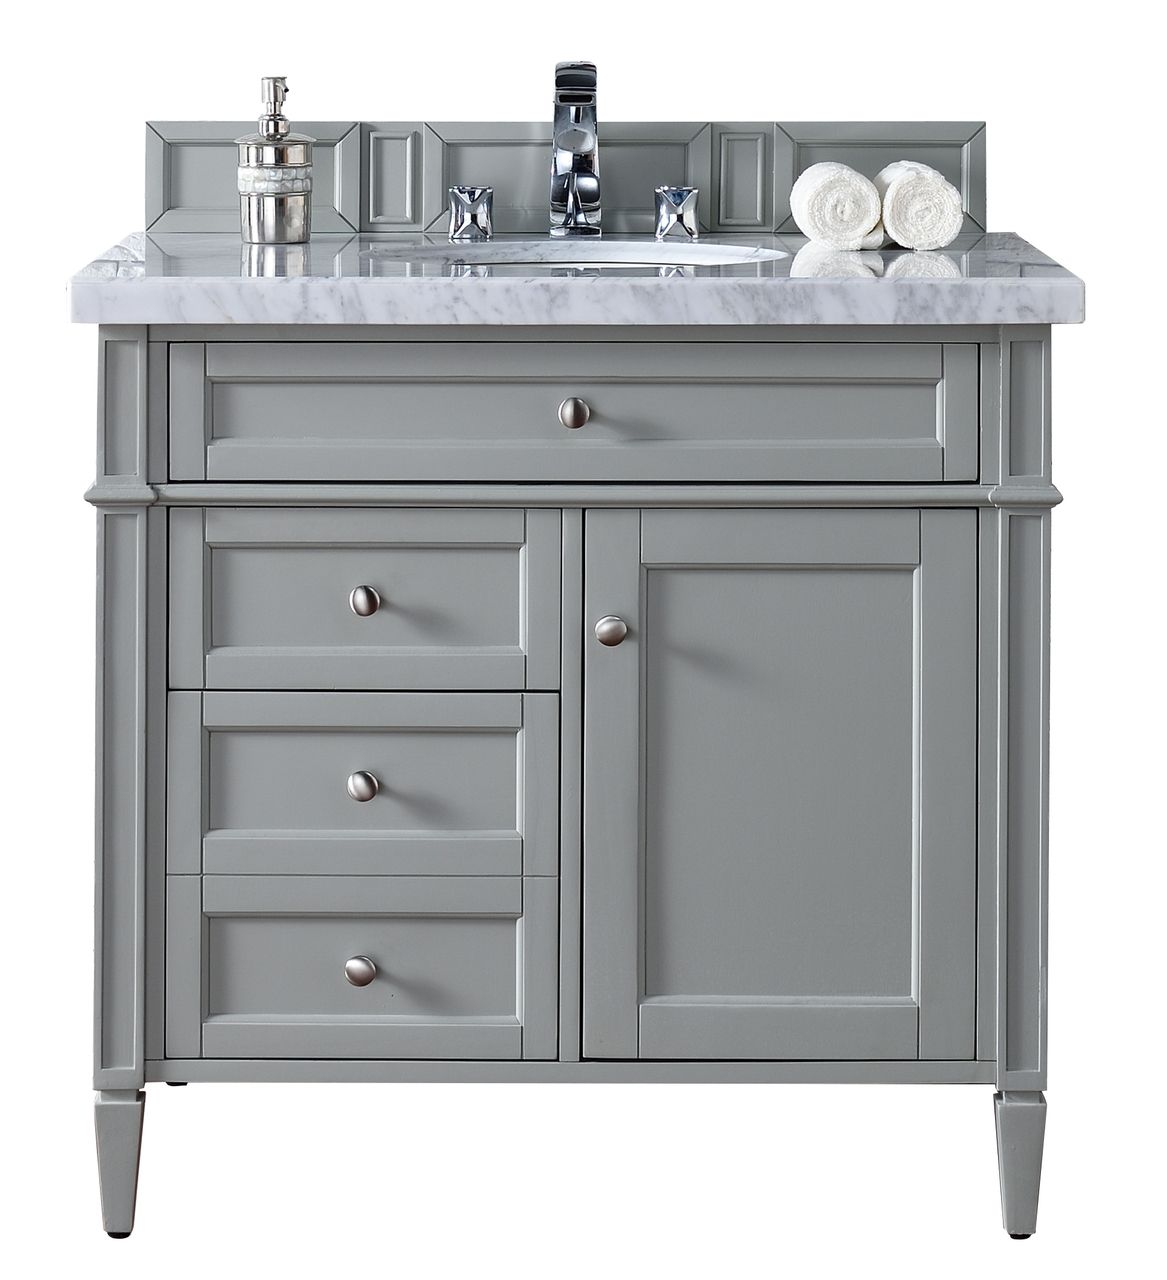 "Bathroom Vanity 24 X 21 36"" brittany single bathroom vanity urban gray 